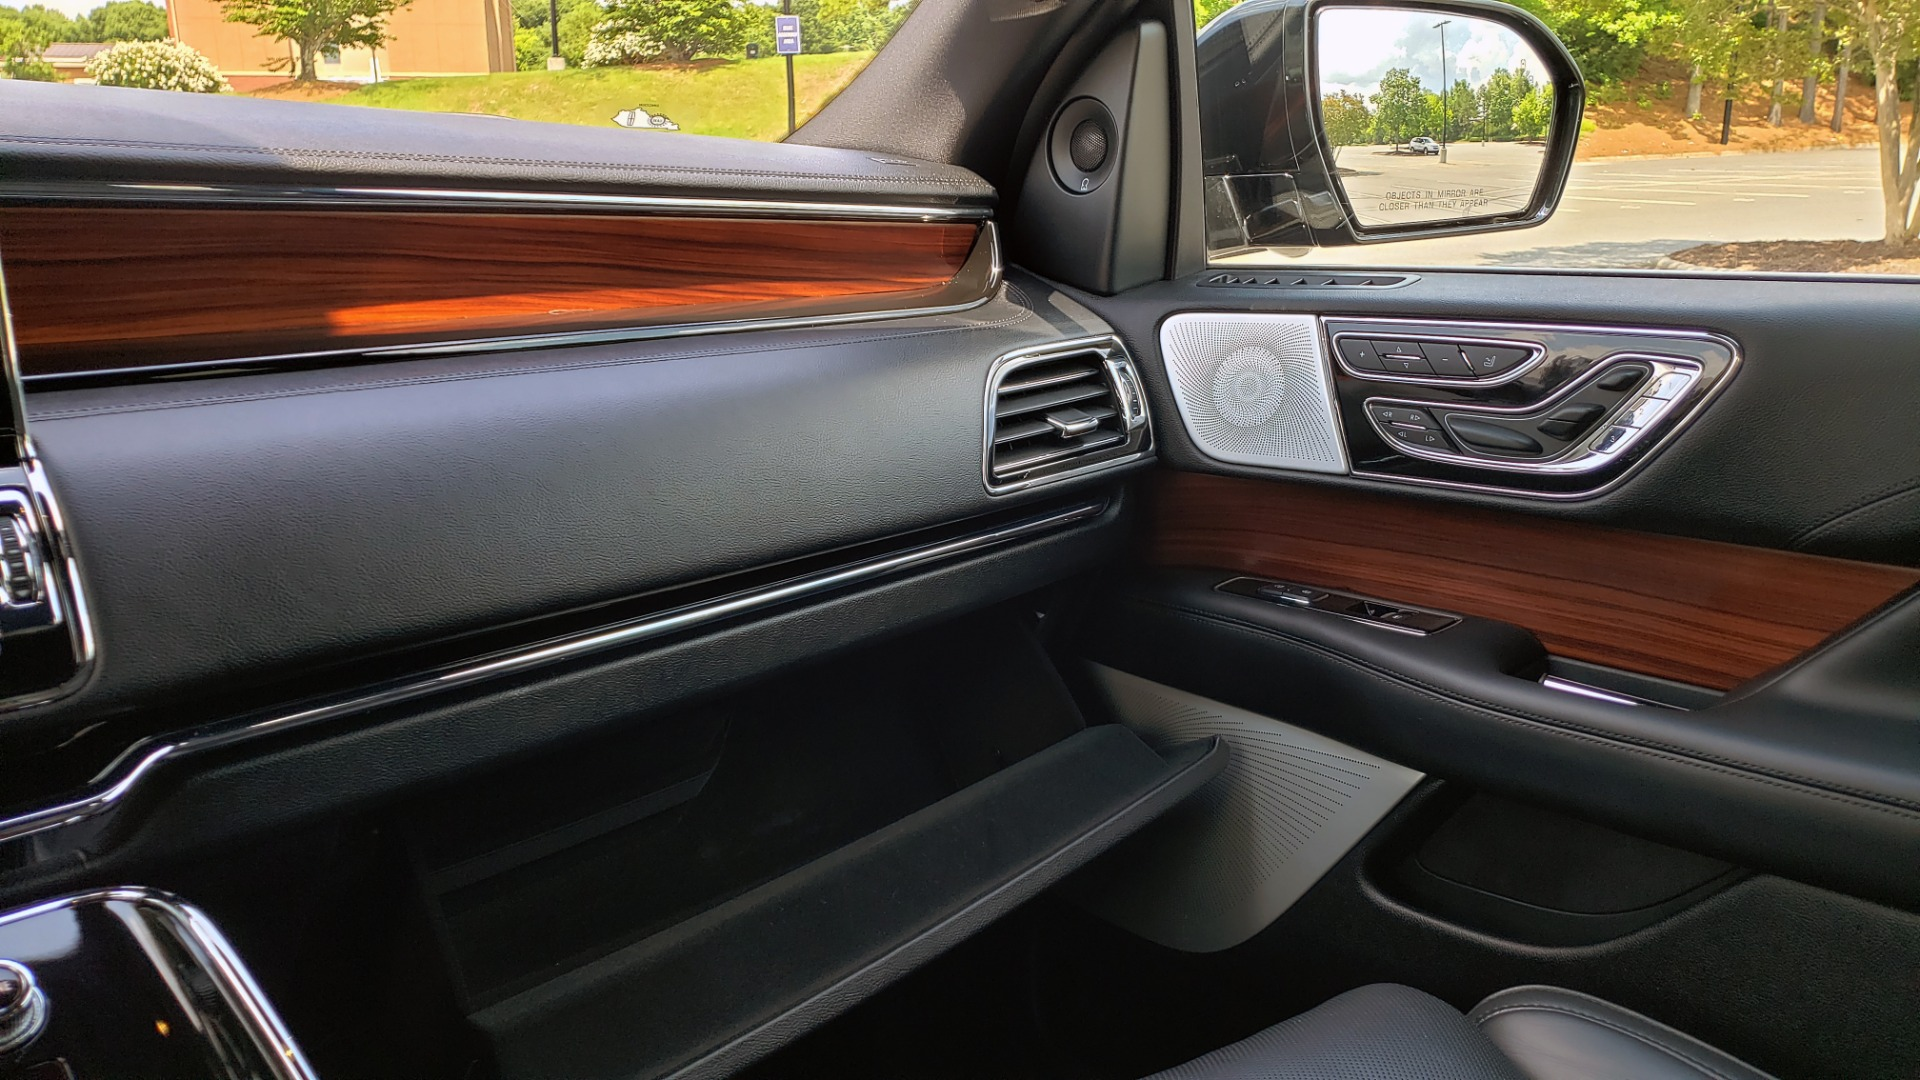 Used 2019 Lincoln NAVIGATOR RESERVE 4X4 / NAV / PANO-ROOF / REVEL ULTIMA AUDIO / 3-ROW / REARVIEW for sale $74,795 at Formula Imports in Charlotte NC 28227 58